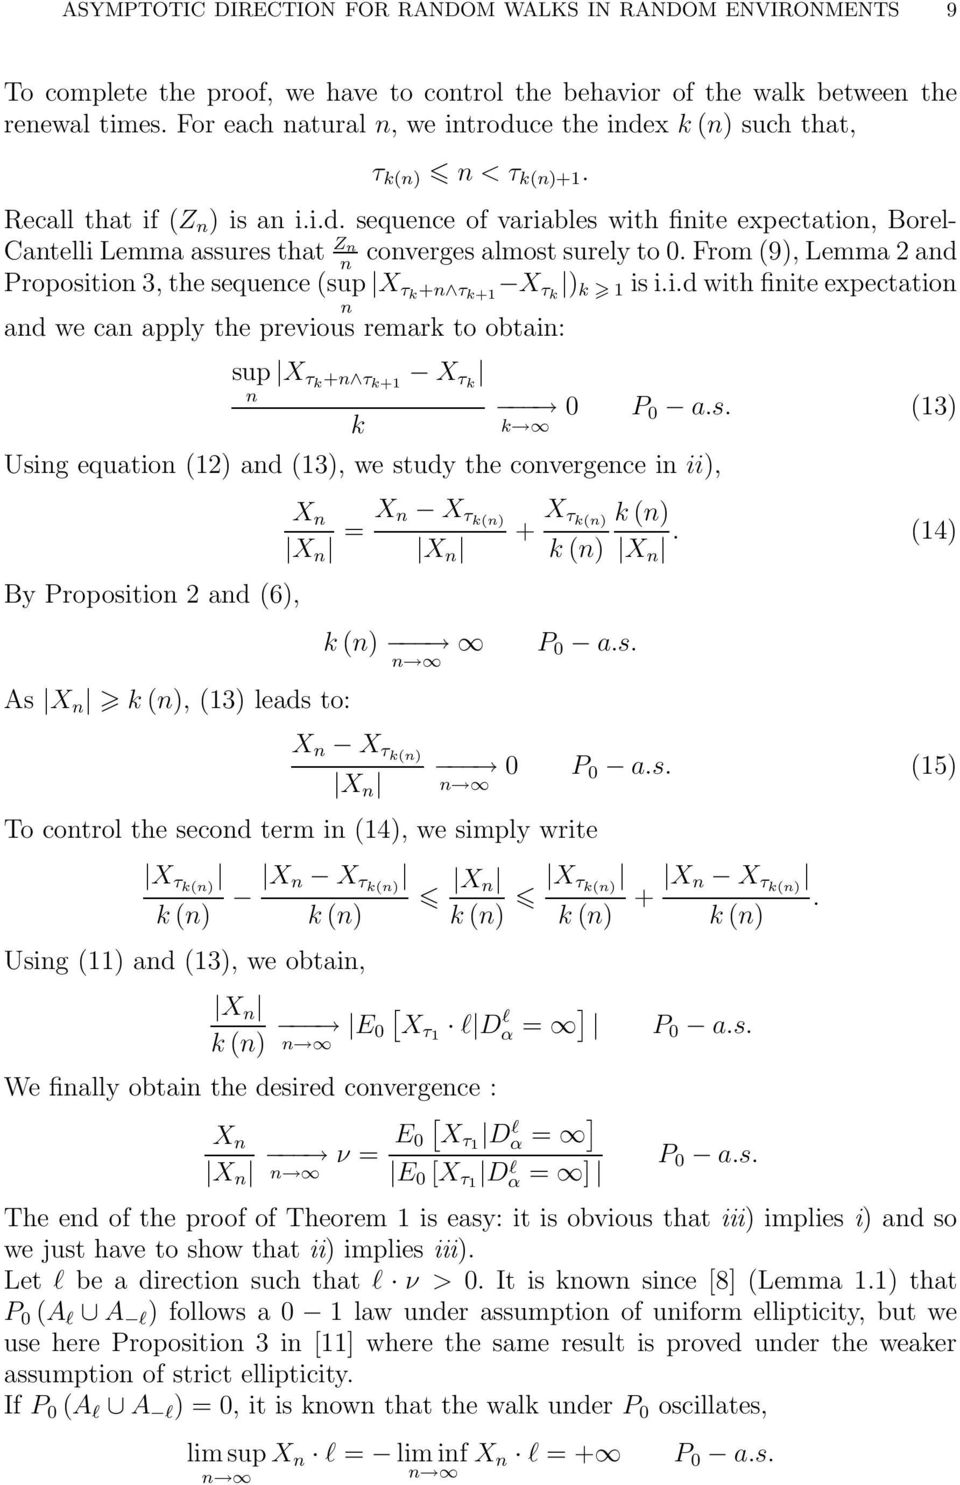 From 9, Lemma 2 and n Proposition 3, the sequence sup X τk +n τ k+1 X τk k 1 is i.i.d with finite expectation n and we can appy the previous remark to obtain: sup X τk +n τ k+1 X τk n k k P 0 a.s. 13 Using equation 12 and 13, we study the convergence in ii, By Proposition 2 and 6, As X n k n, 13 eads to: X n X n = X n X τkn X n + X τ kn k n k n n P 0 a.